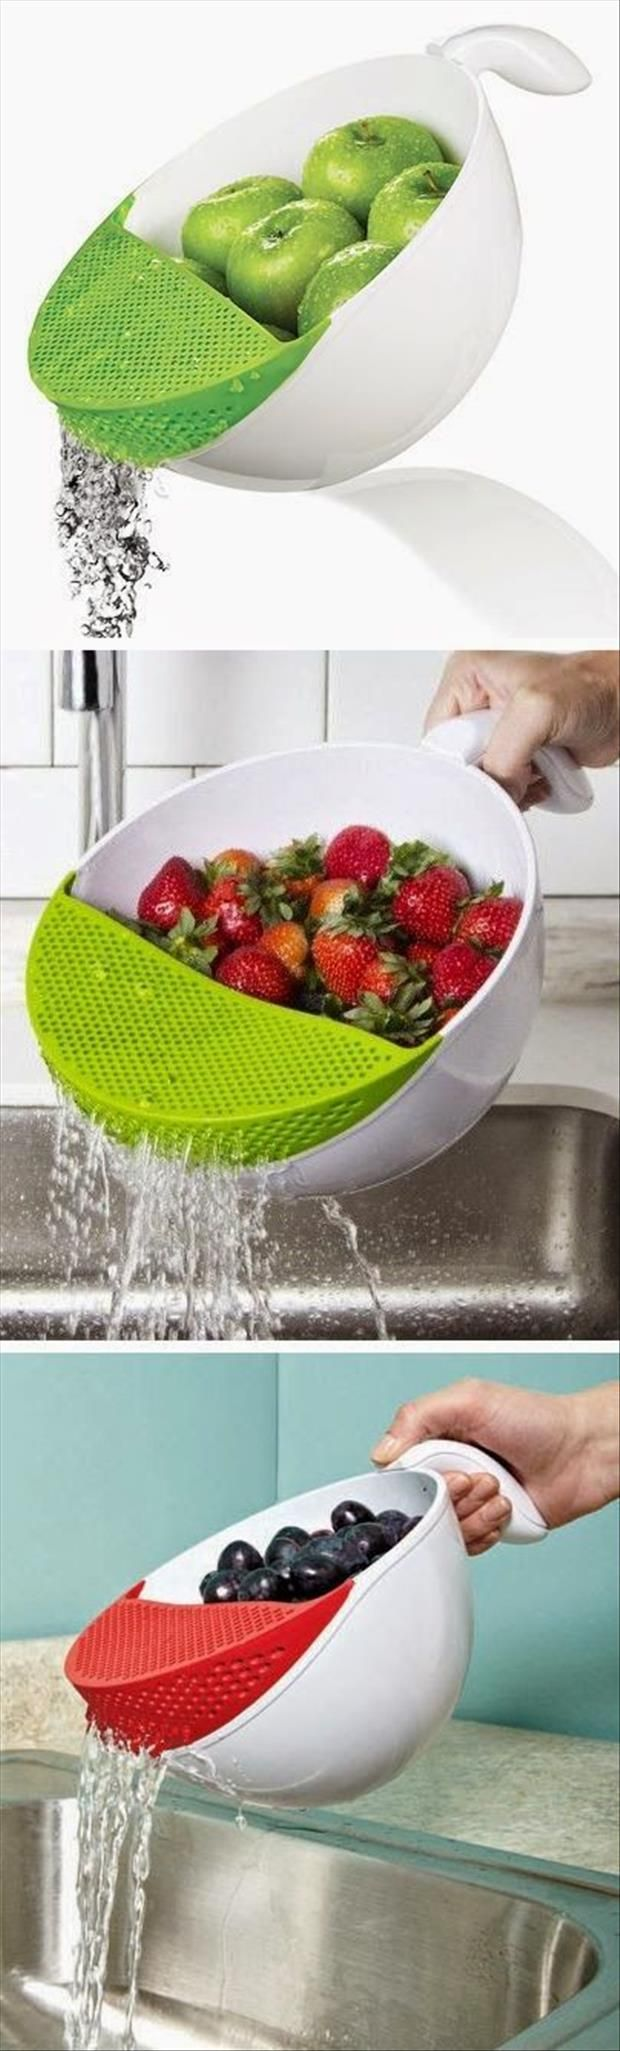 116 best must have gadgets images on pinterest kitchen kitchen